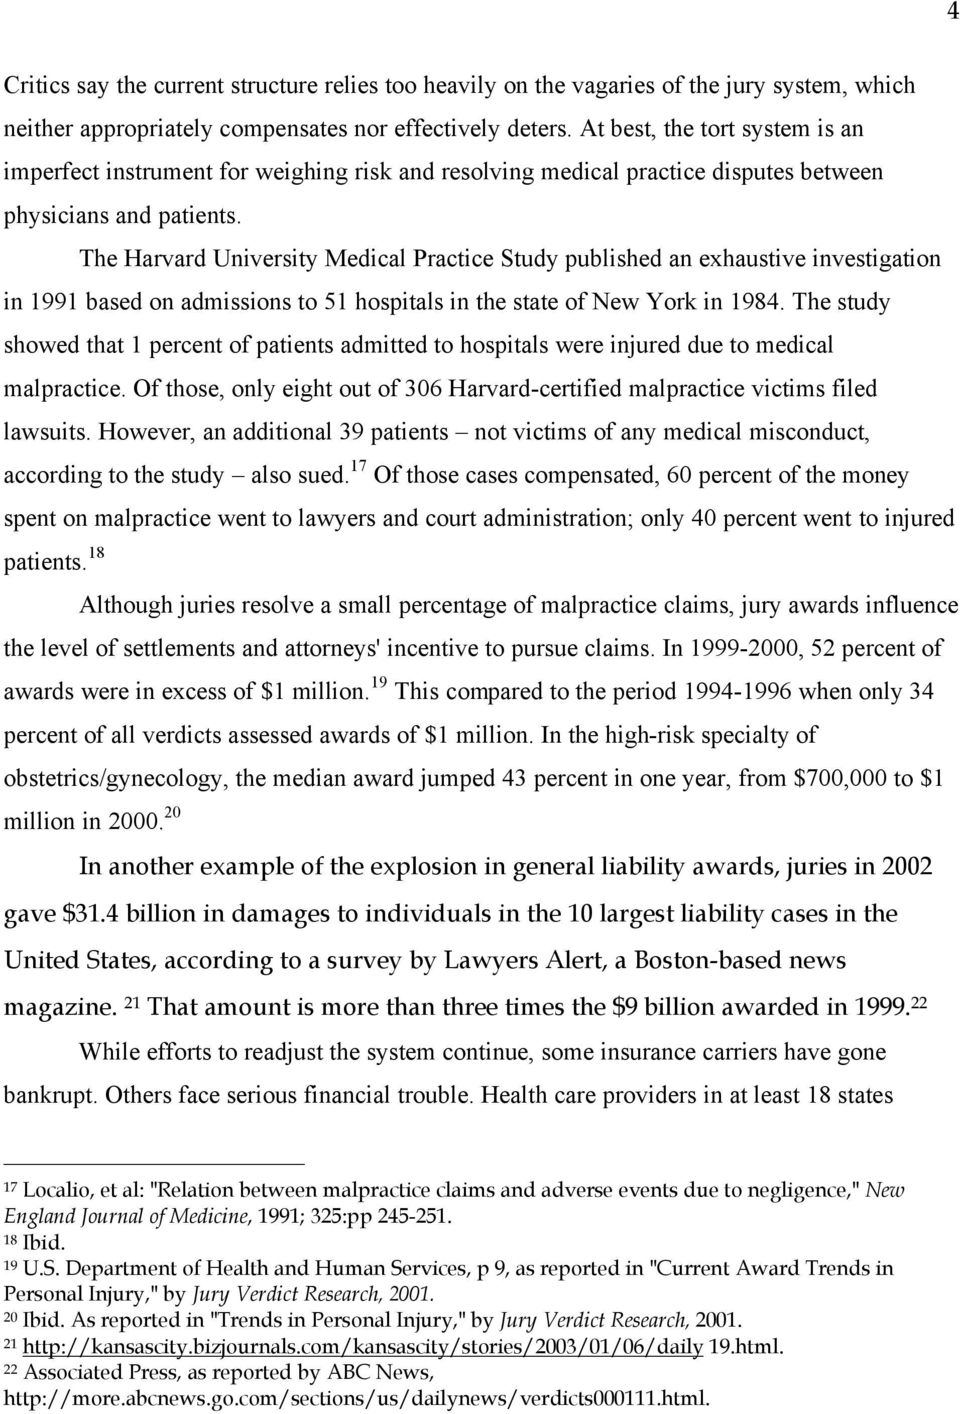 The Harvard University Medical Practice Study published an exhaustive investigation in 1991 based on admissions to 51 hospitals in the state of New York in 1984.